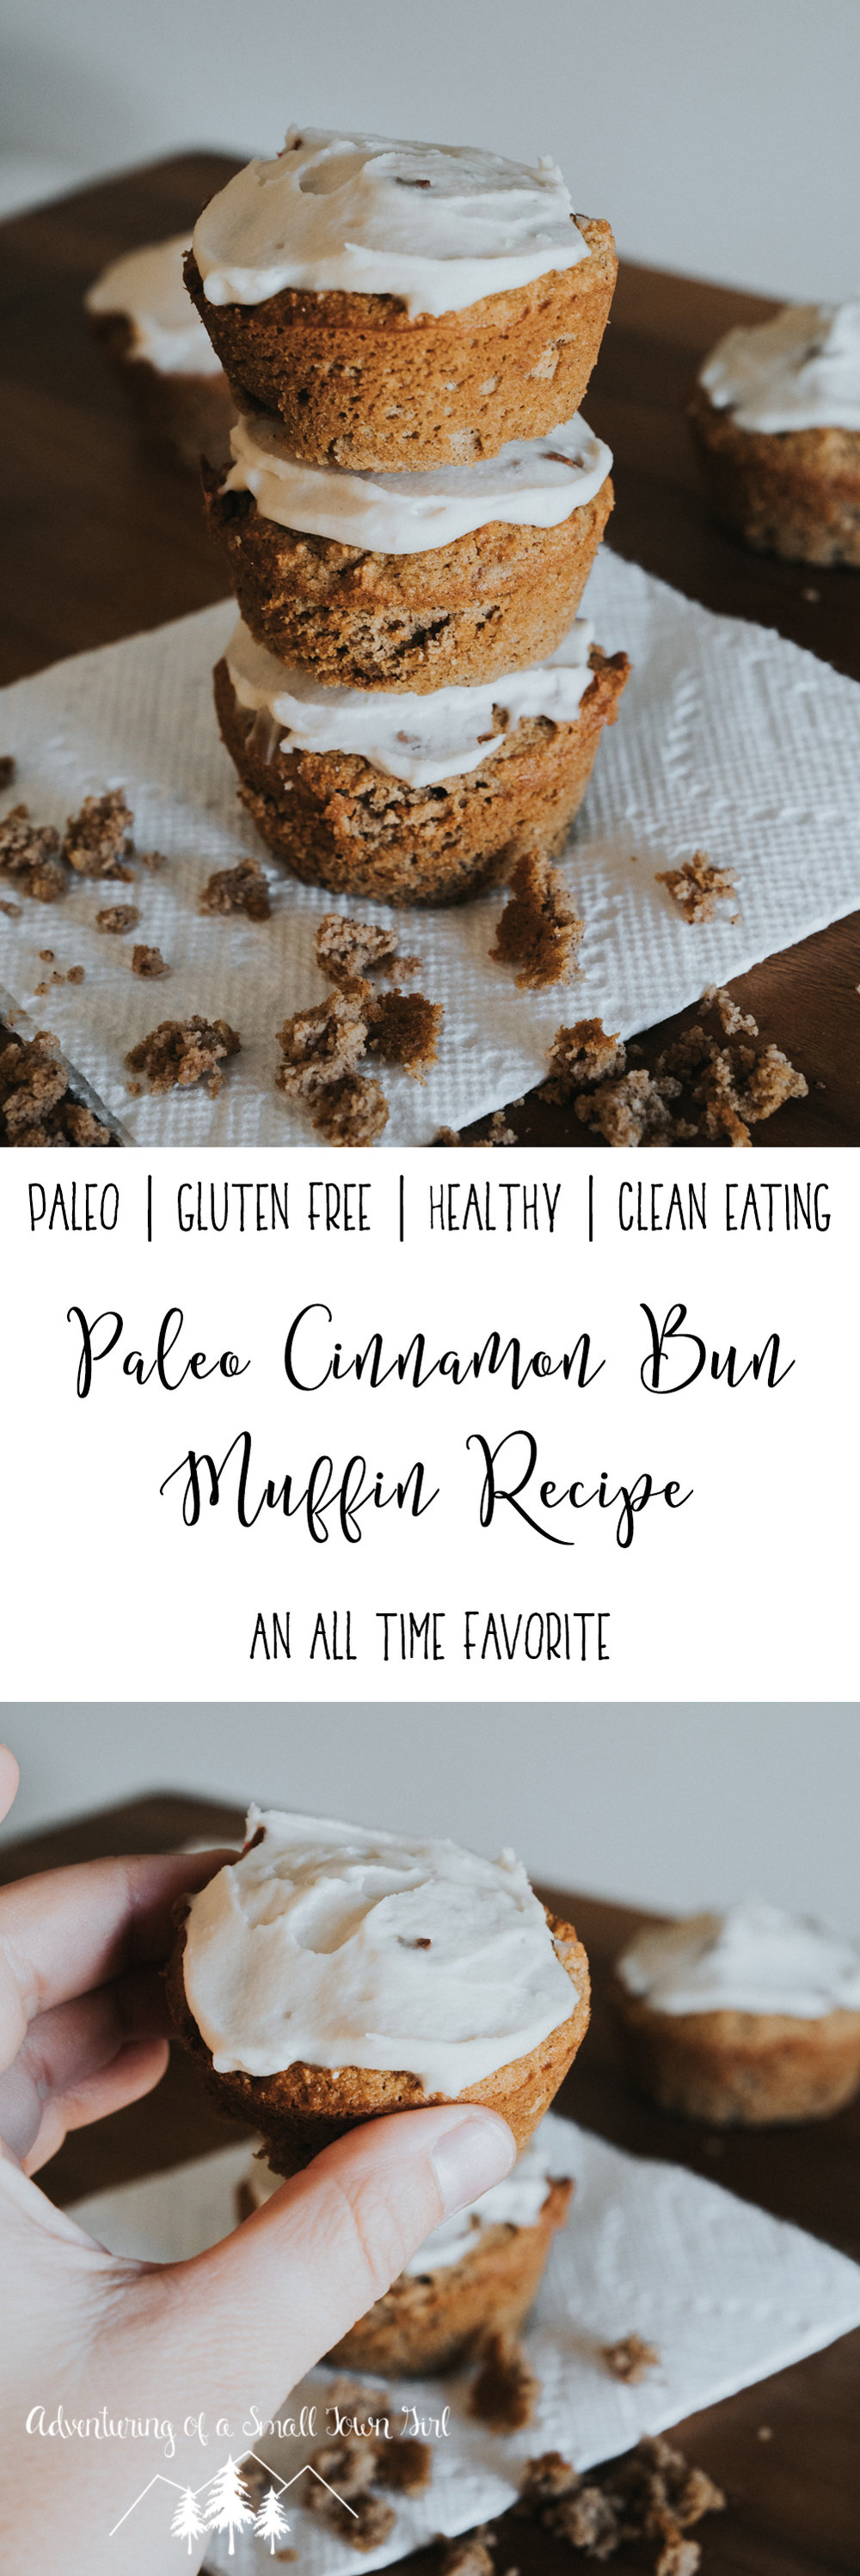 Paleo Cinnamon Bun Muffin Recipe by Adventuring of a Small Town Girl - Recipes for adventures by ASTG